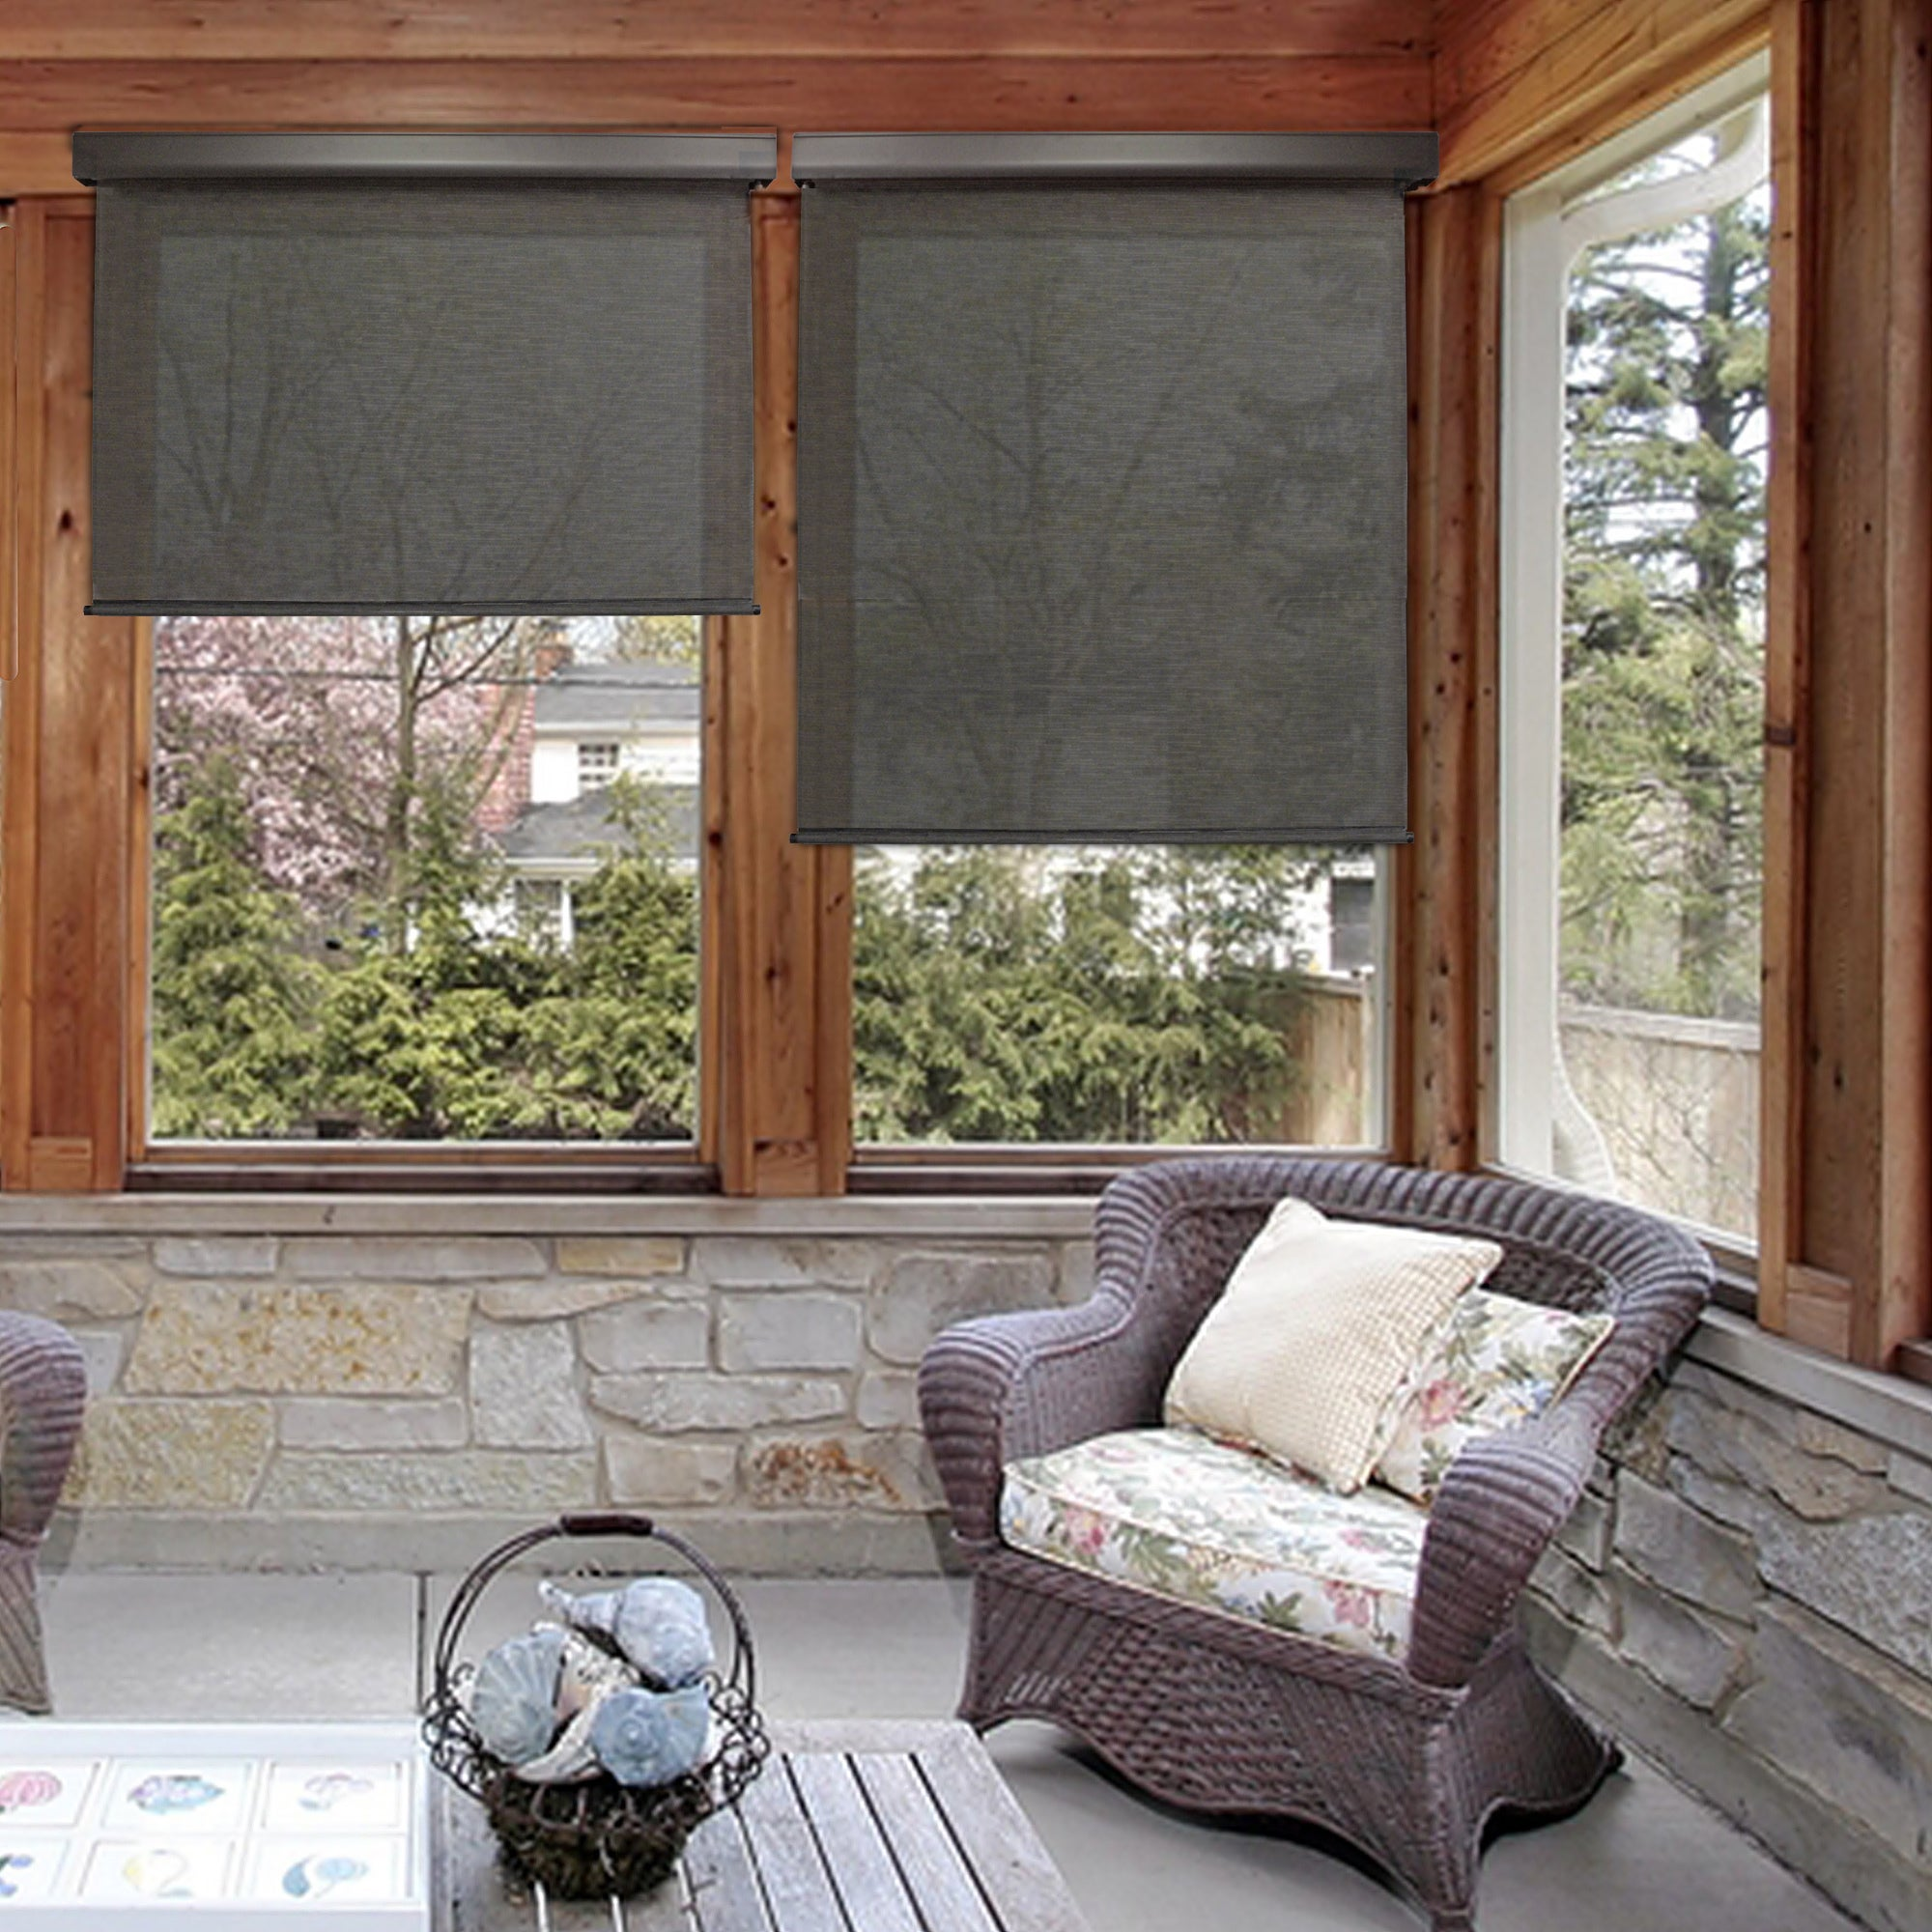 motorized shades page window home automated product shade screen blinds shadesq oc